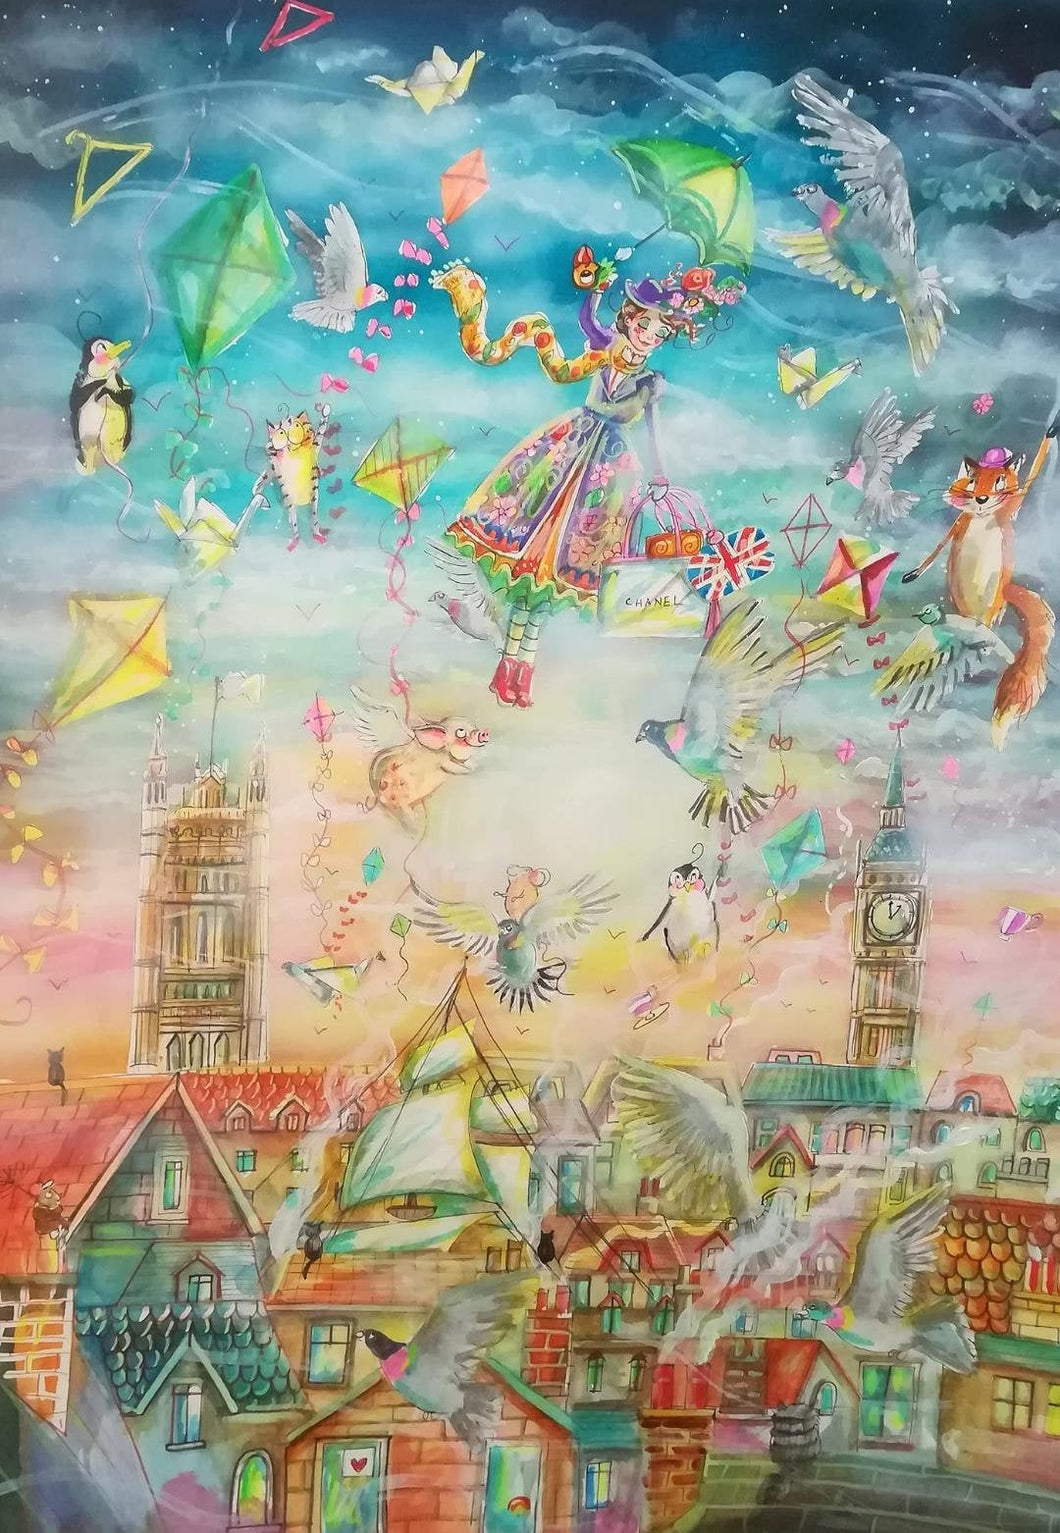 A beautiful Mary Poppins inspired puzzle